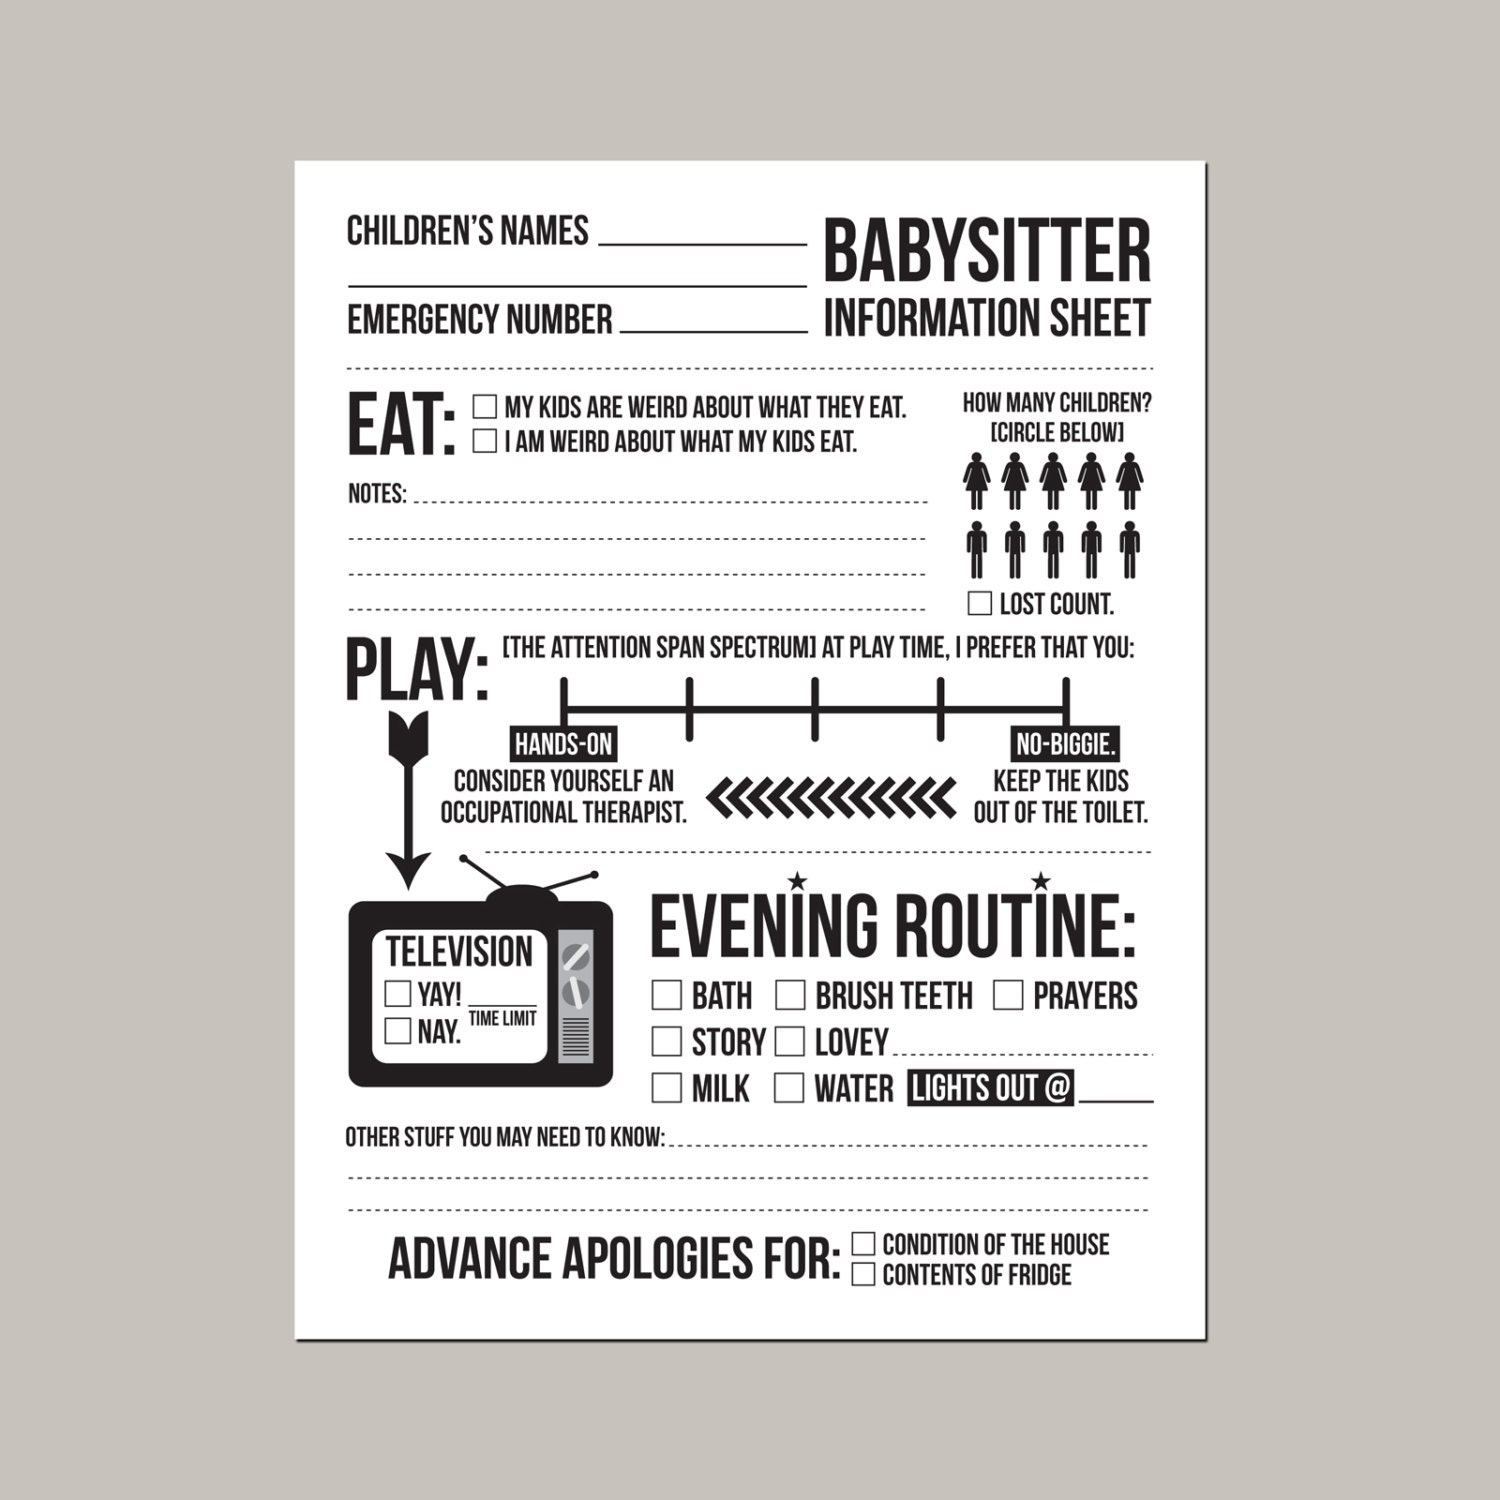 childcare toddler bed instructions